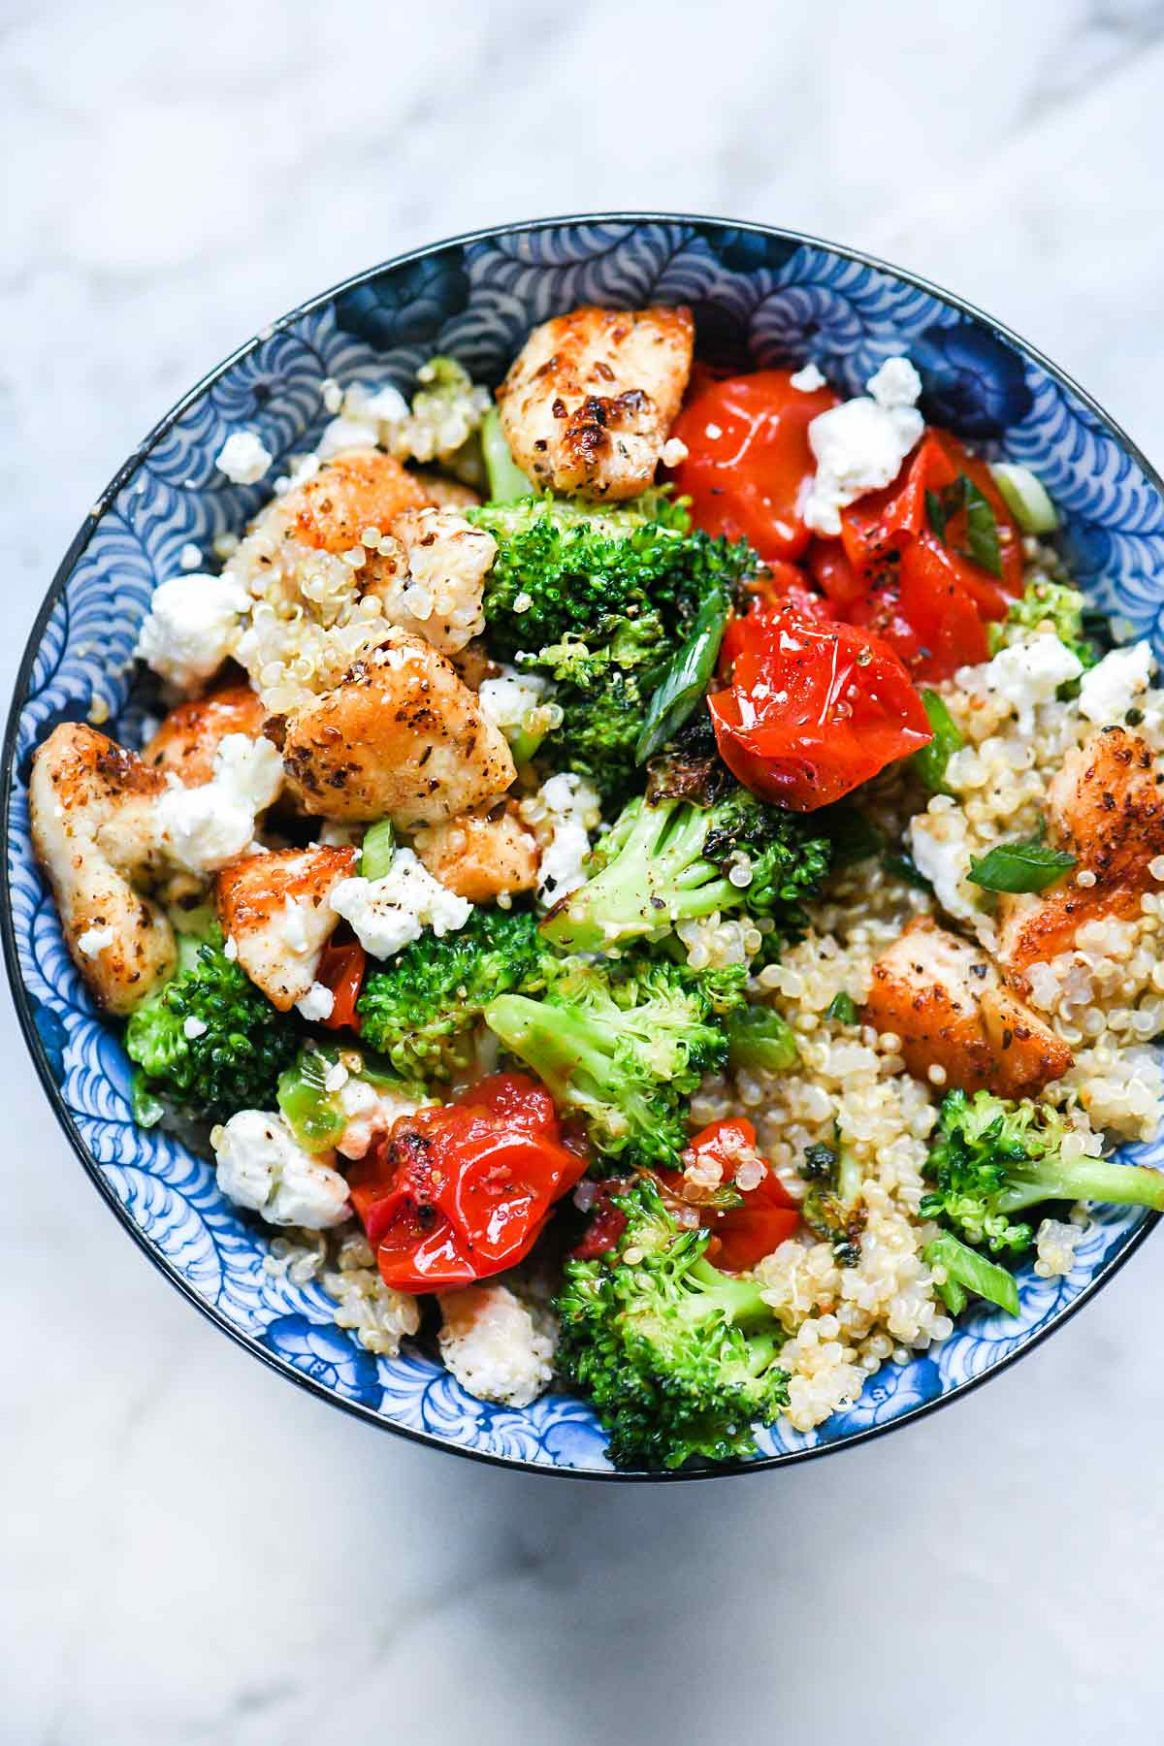 Mediterranean Chicken Quinoa Bowl with Broccoli and Tomato - Dinner Recipes Quinoa